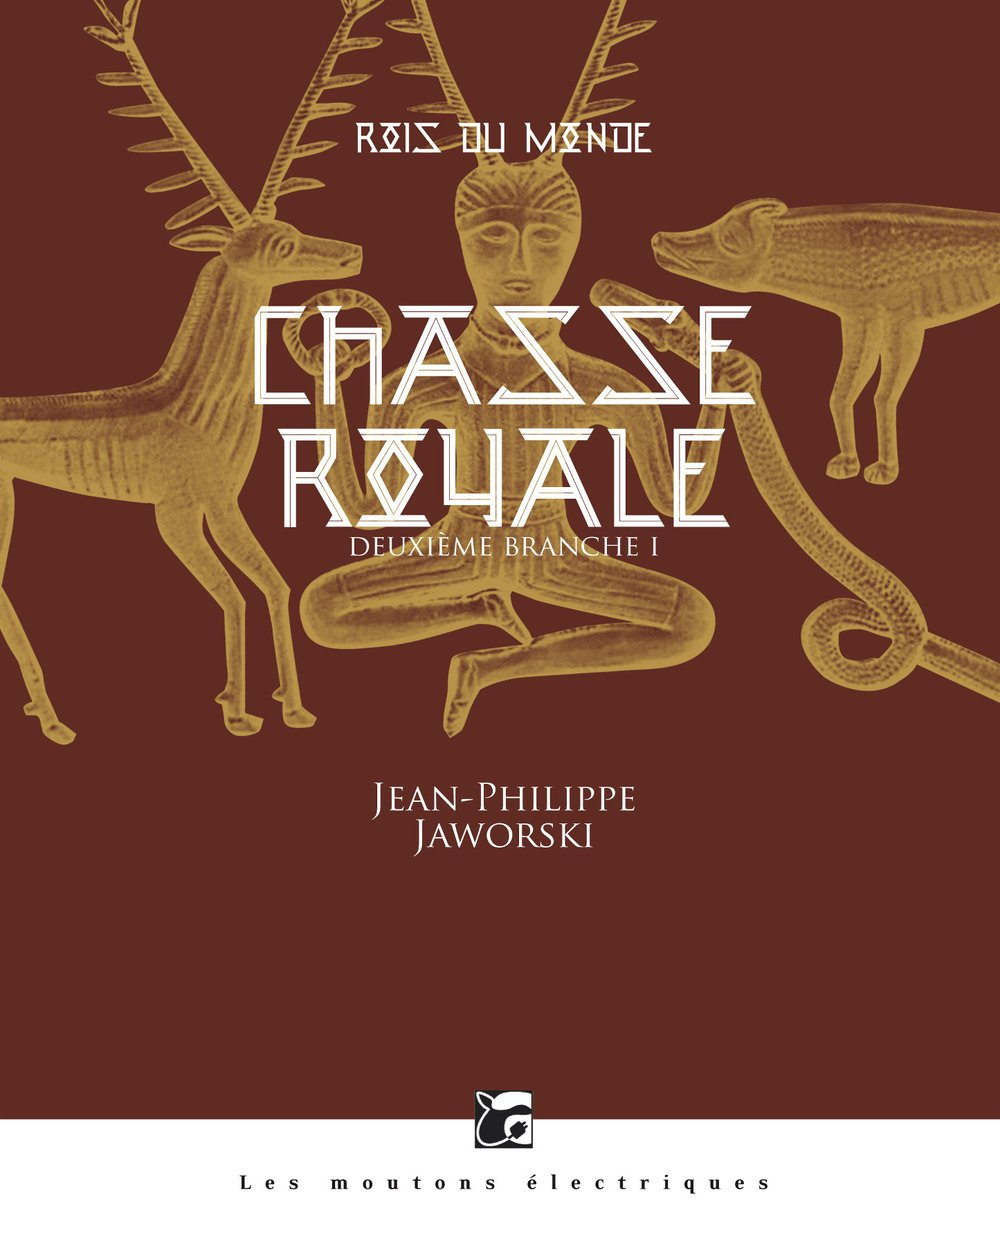 Rois du monde, Tome 2 : Chasse royale de Jean-Philippe Jaworski